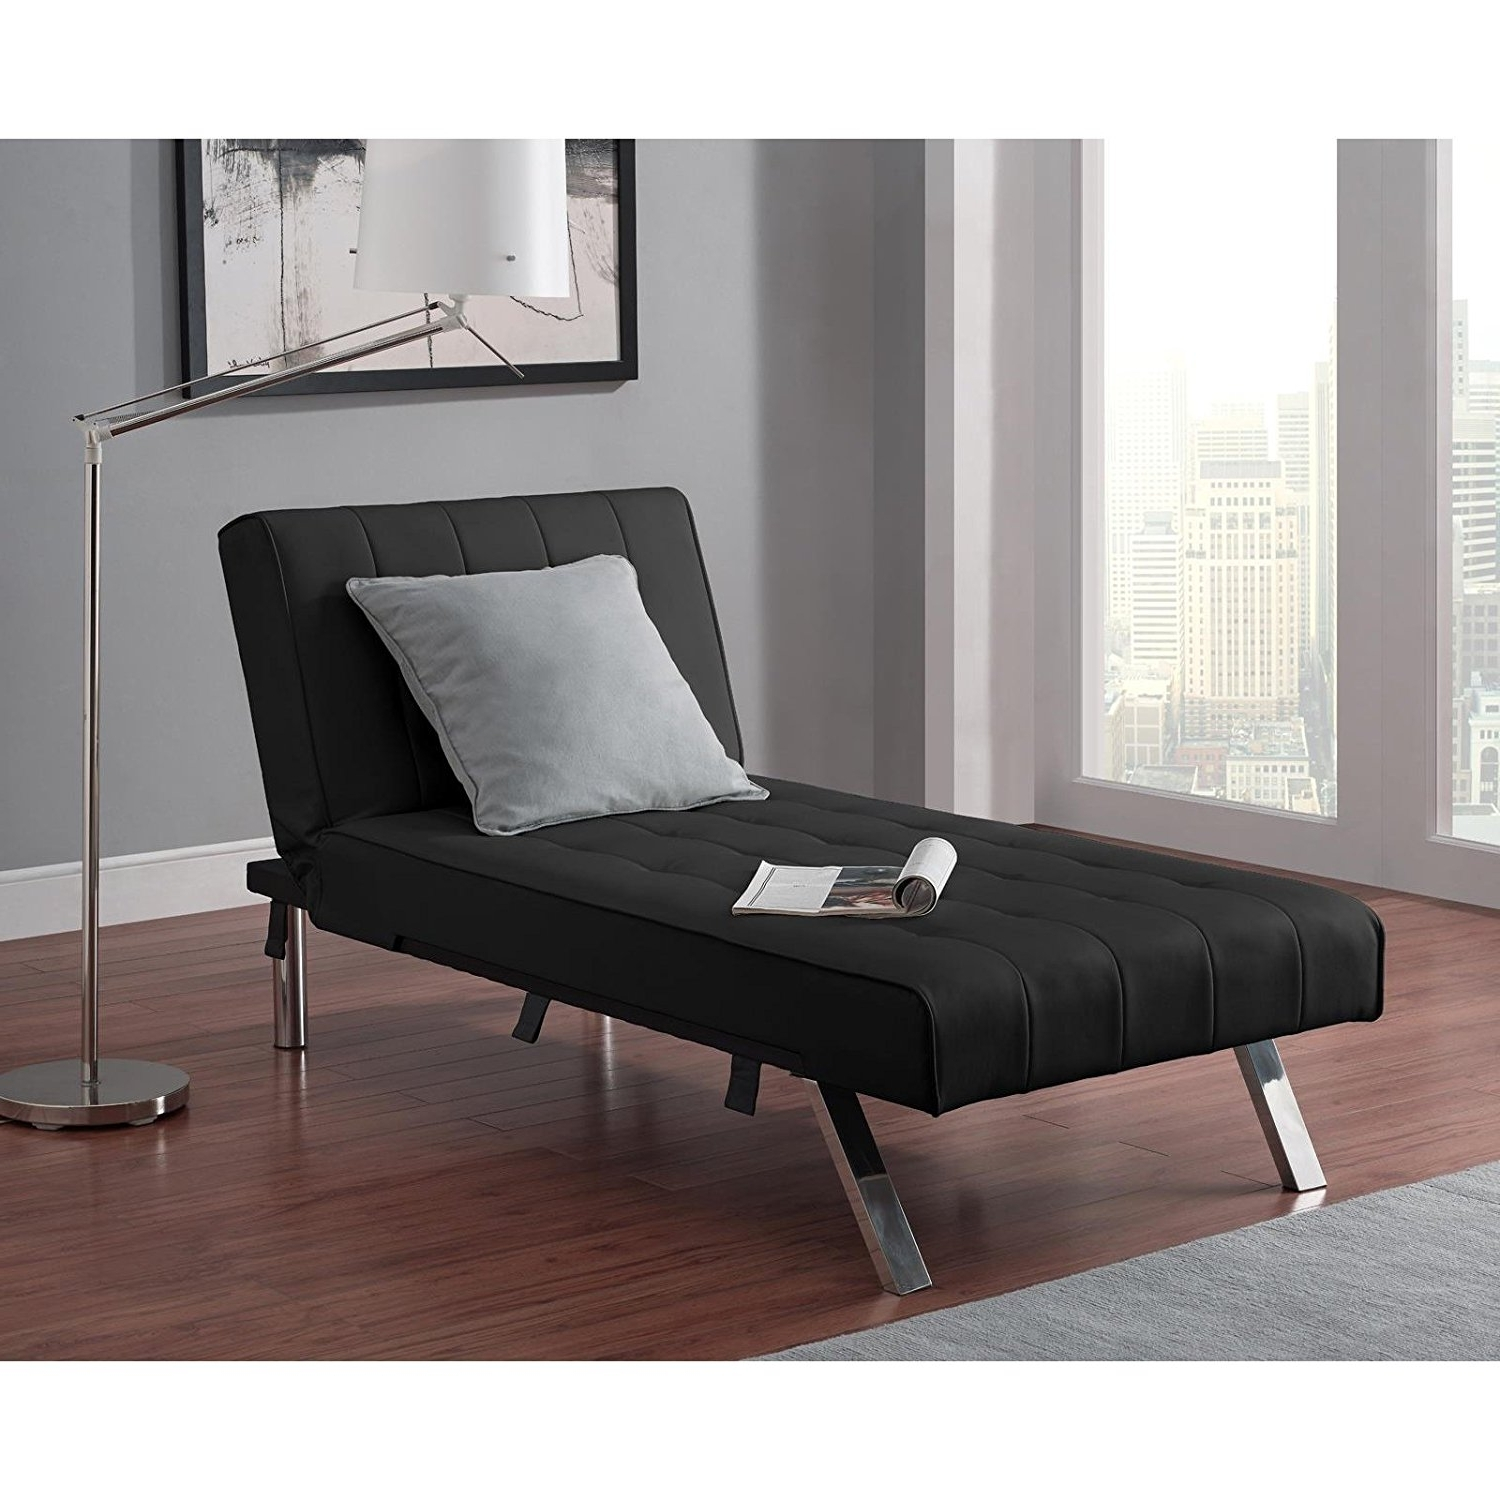 Amazon: Emily Futon With Chaise Lounger Super Bonus Set Black Intended For Latest Futons With Chaise (View 1 of 15)